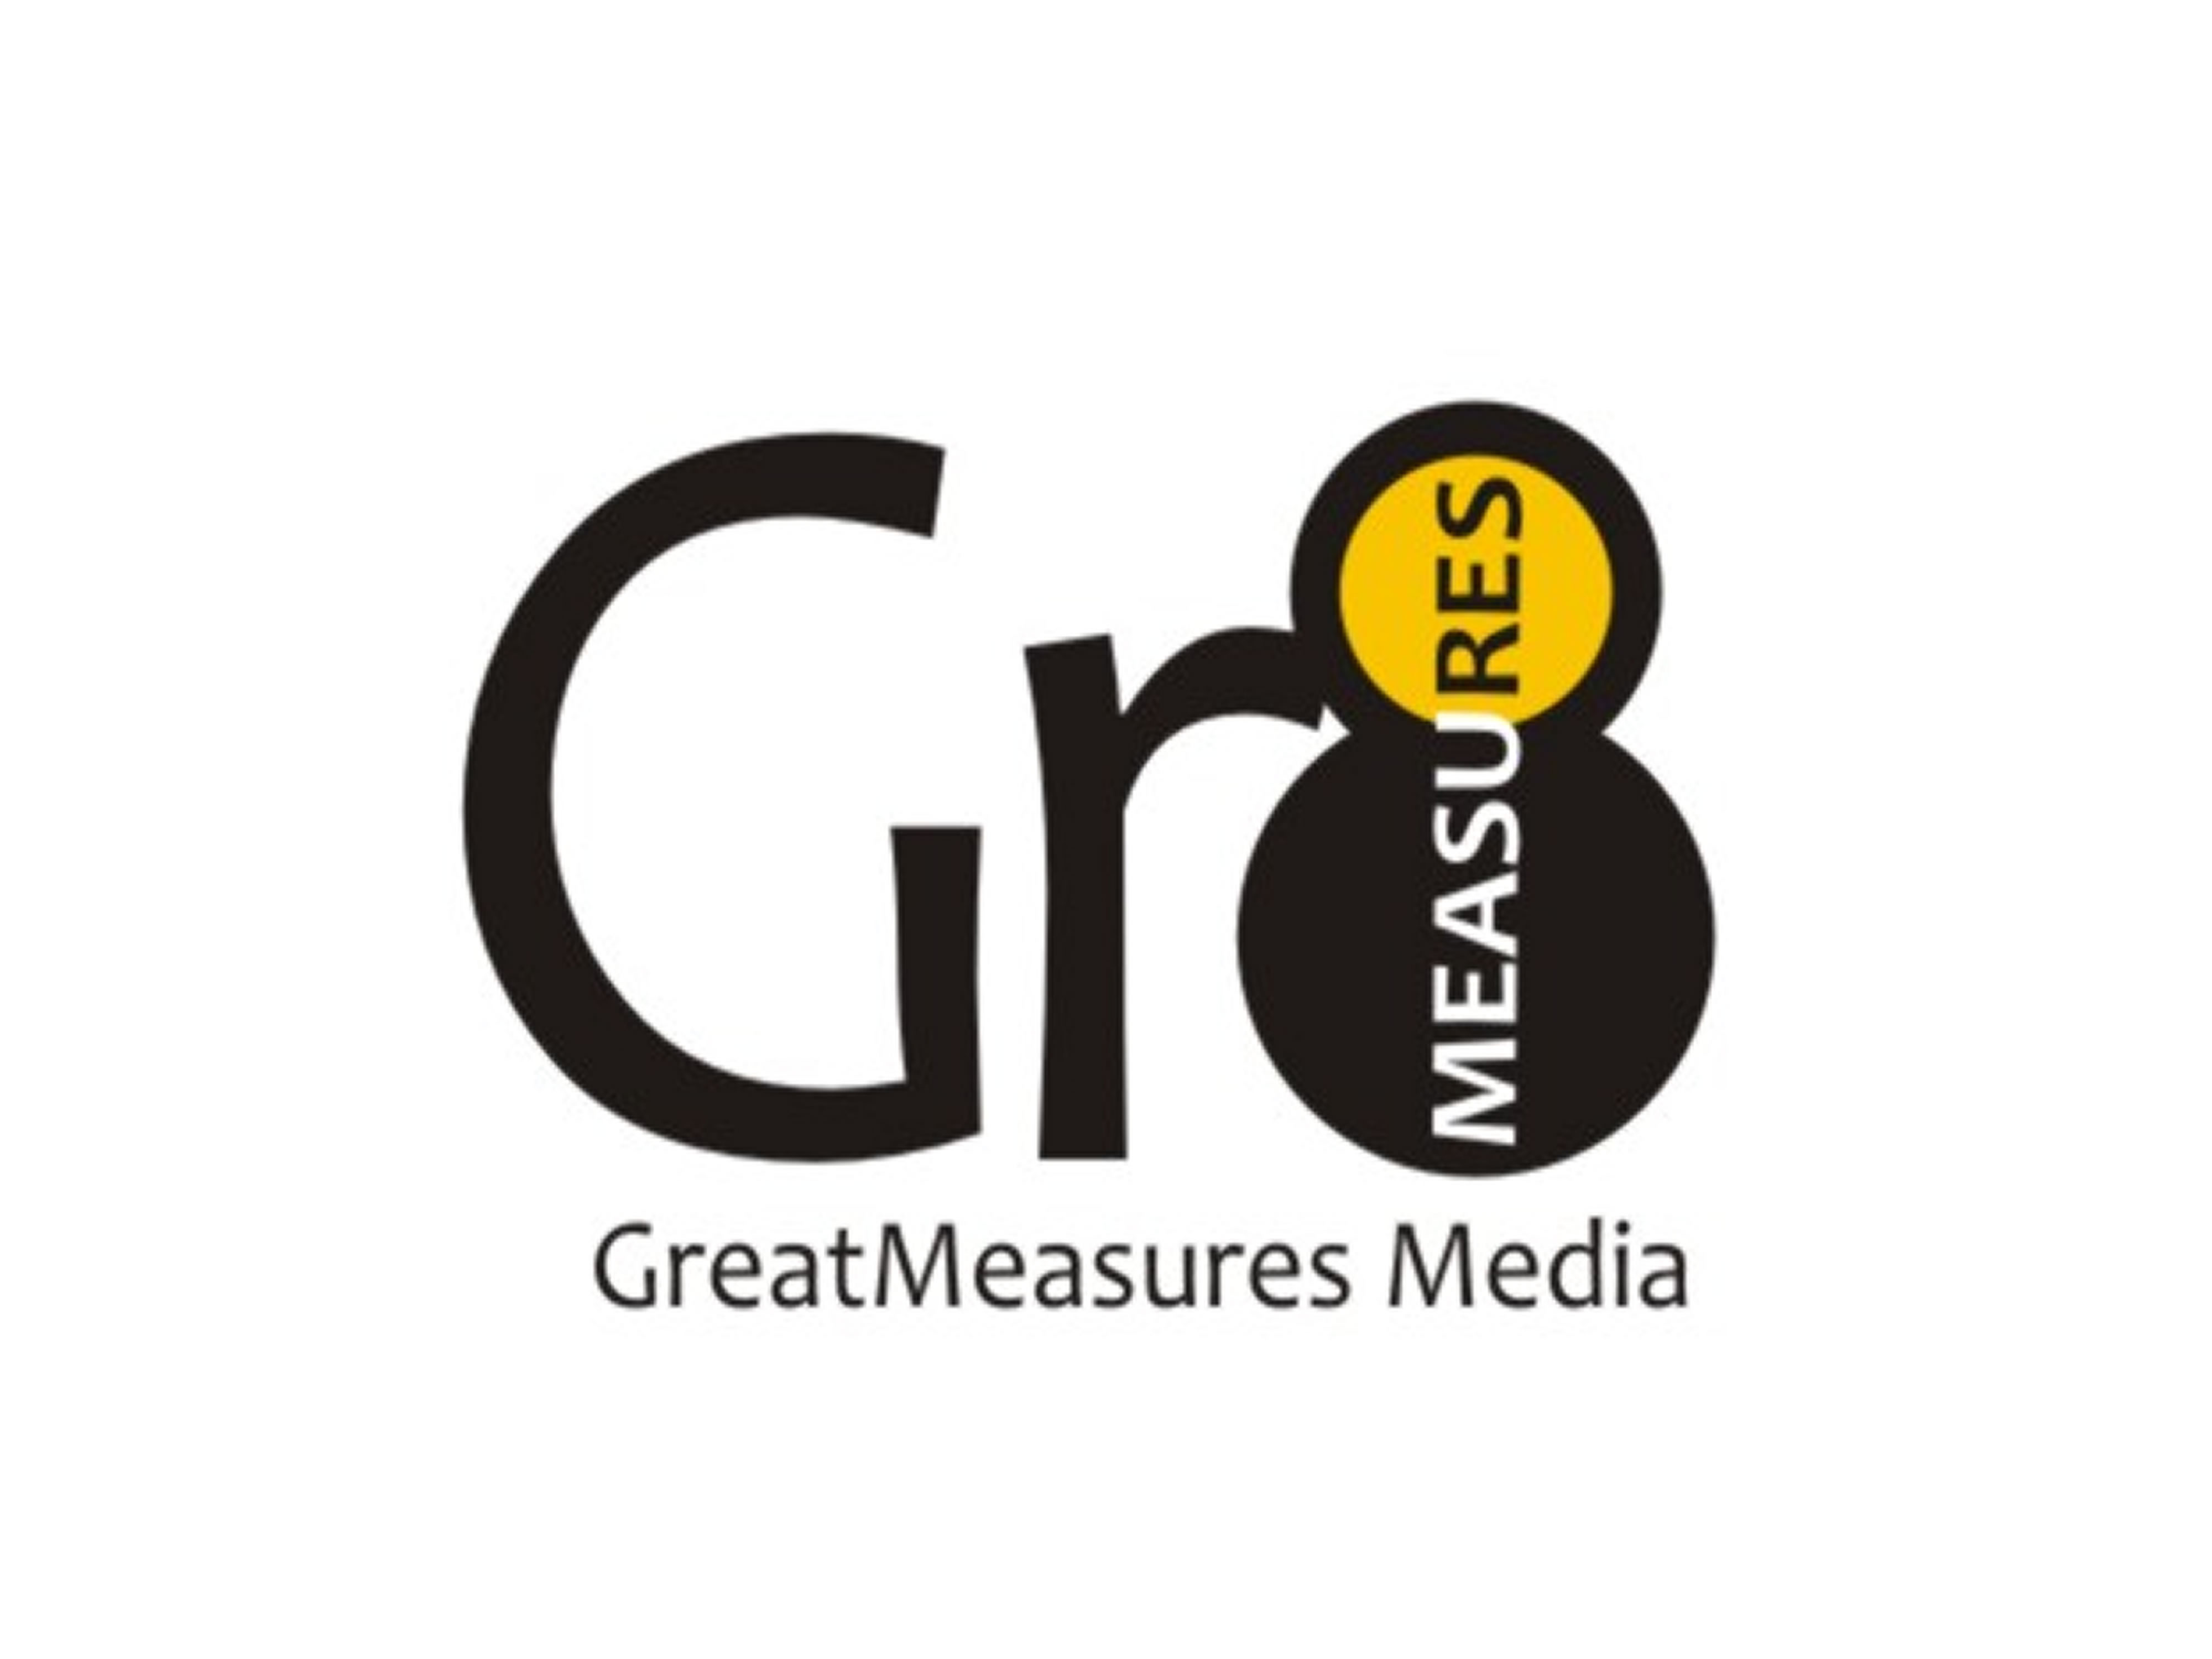 GREAT MEASURES MEDIA NETWORK LIMITED